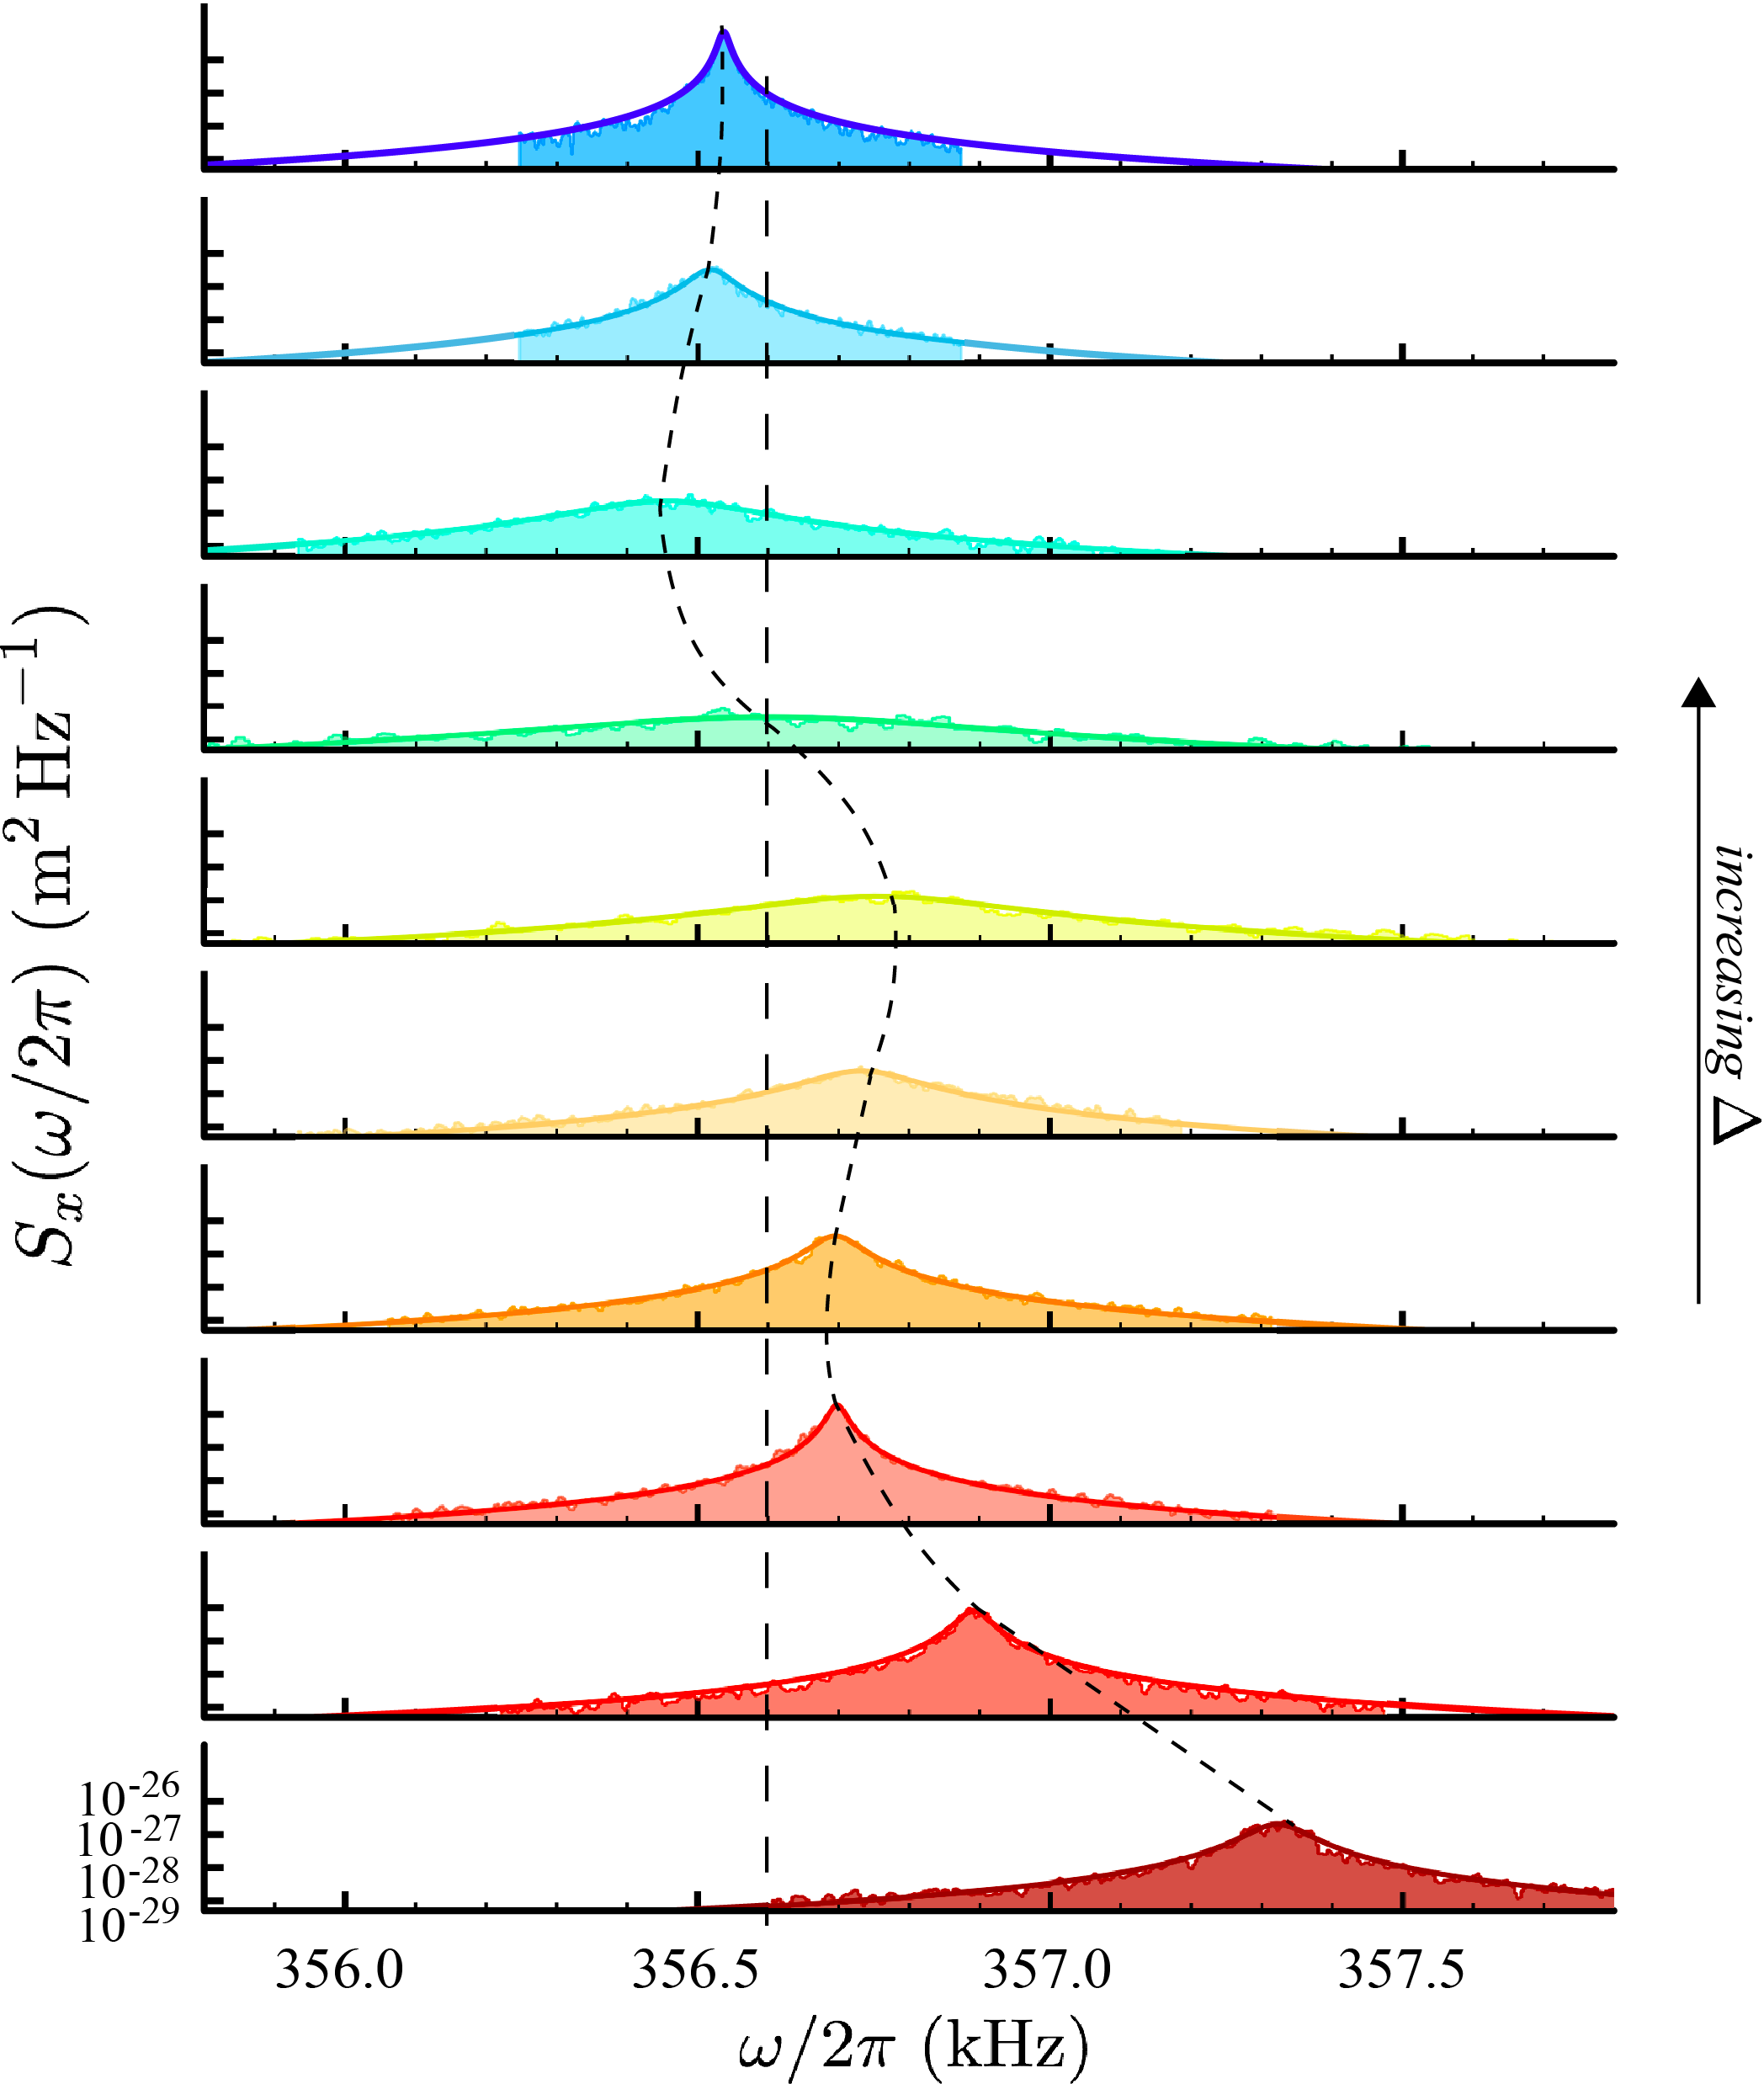 Calibrated position noise spectrum around the resonance associated with the fundamental vibrational mode of the membrane, with bare mechanical frequency